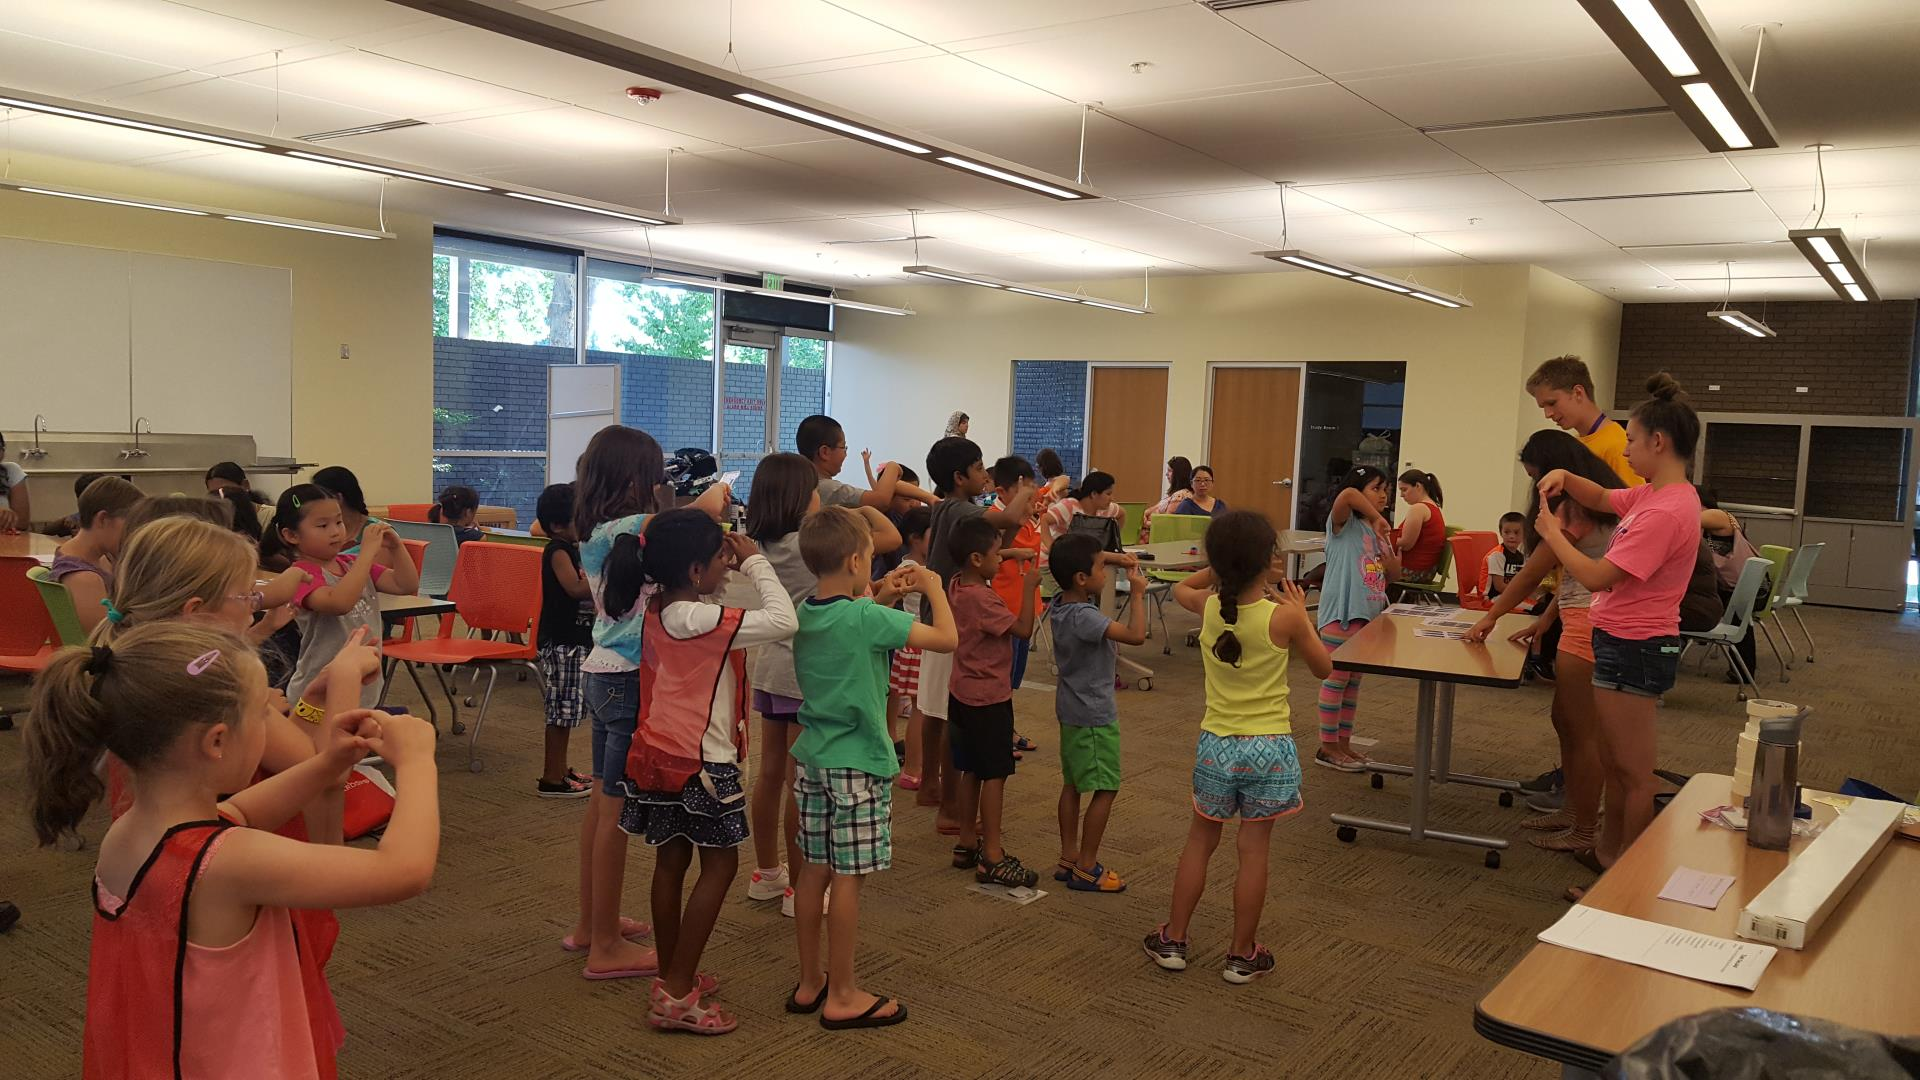 Children participate in a game of Geometric Shapes Simon Says